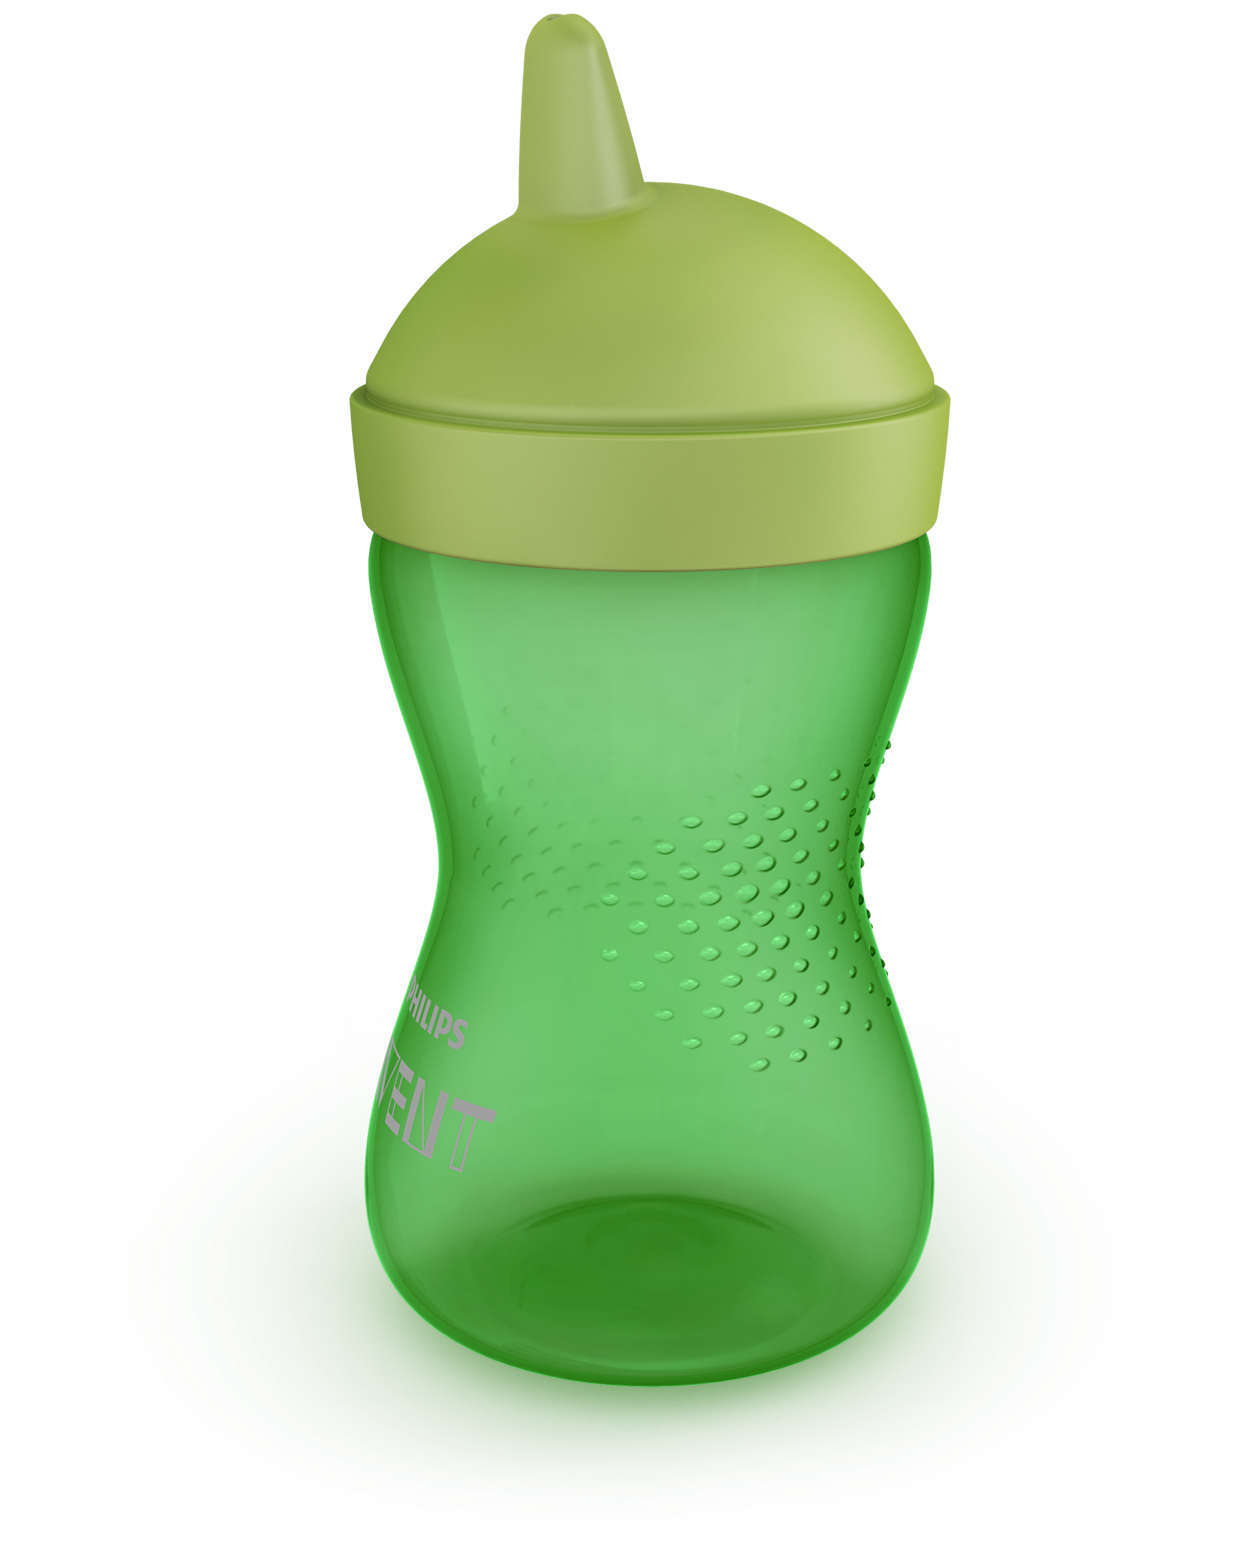 Avent Grippy Cup Hard - 300ml (Green) image